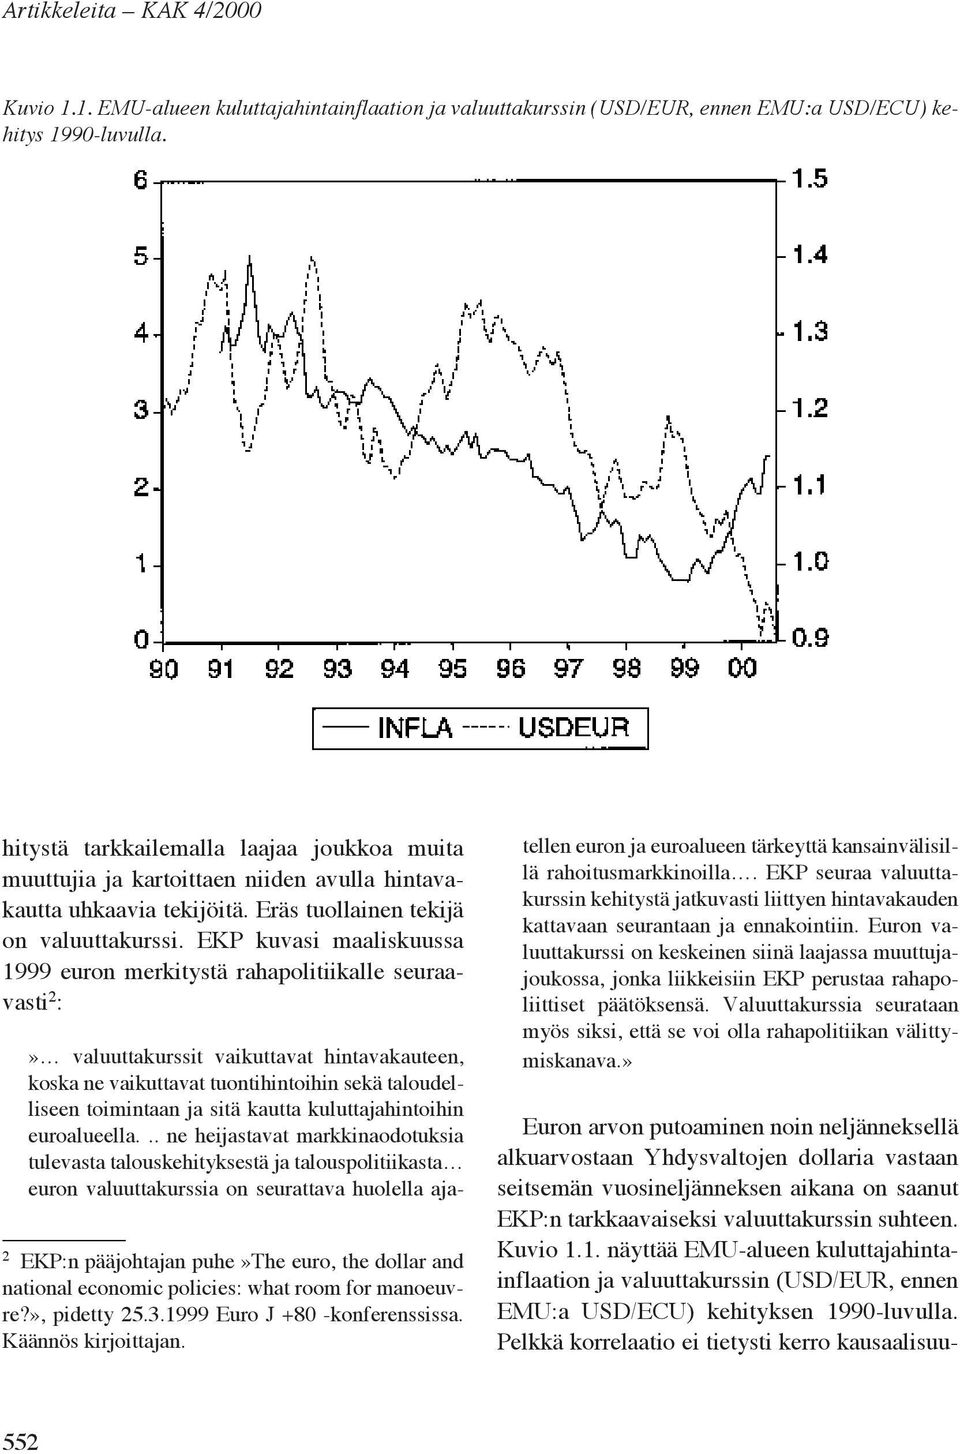 EKP kuvasi maaliskuussa 1999 euron merkitystä rahapolitiikalle seuraavasti 2 : 2 EKP:n pääjohtajan puhe»the euro, the dollar and national economic policies: what room for manoeuvre?», pidetty 25.3.